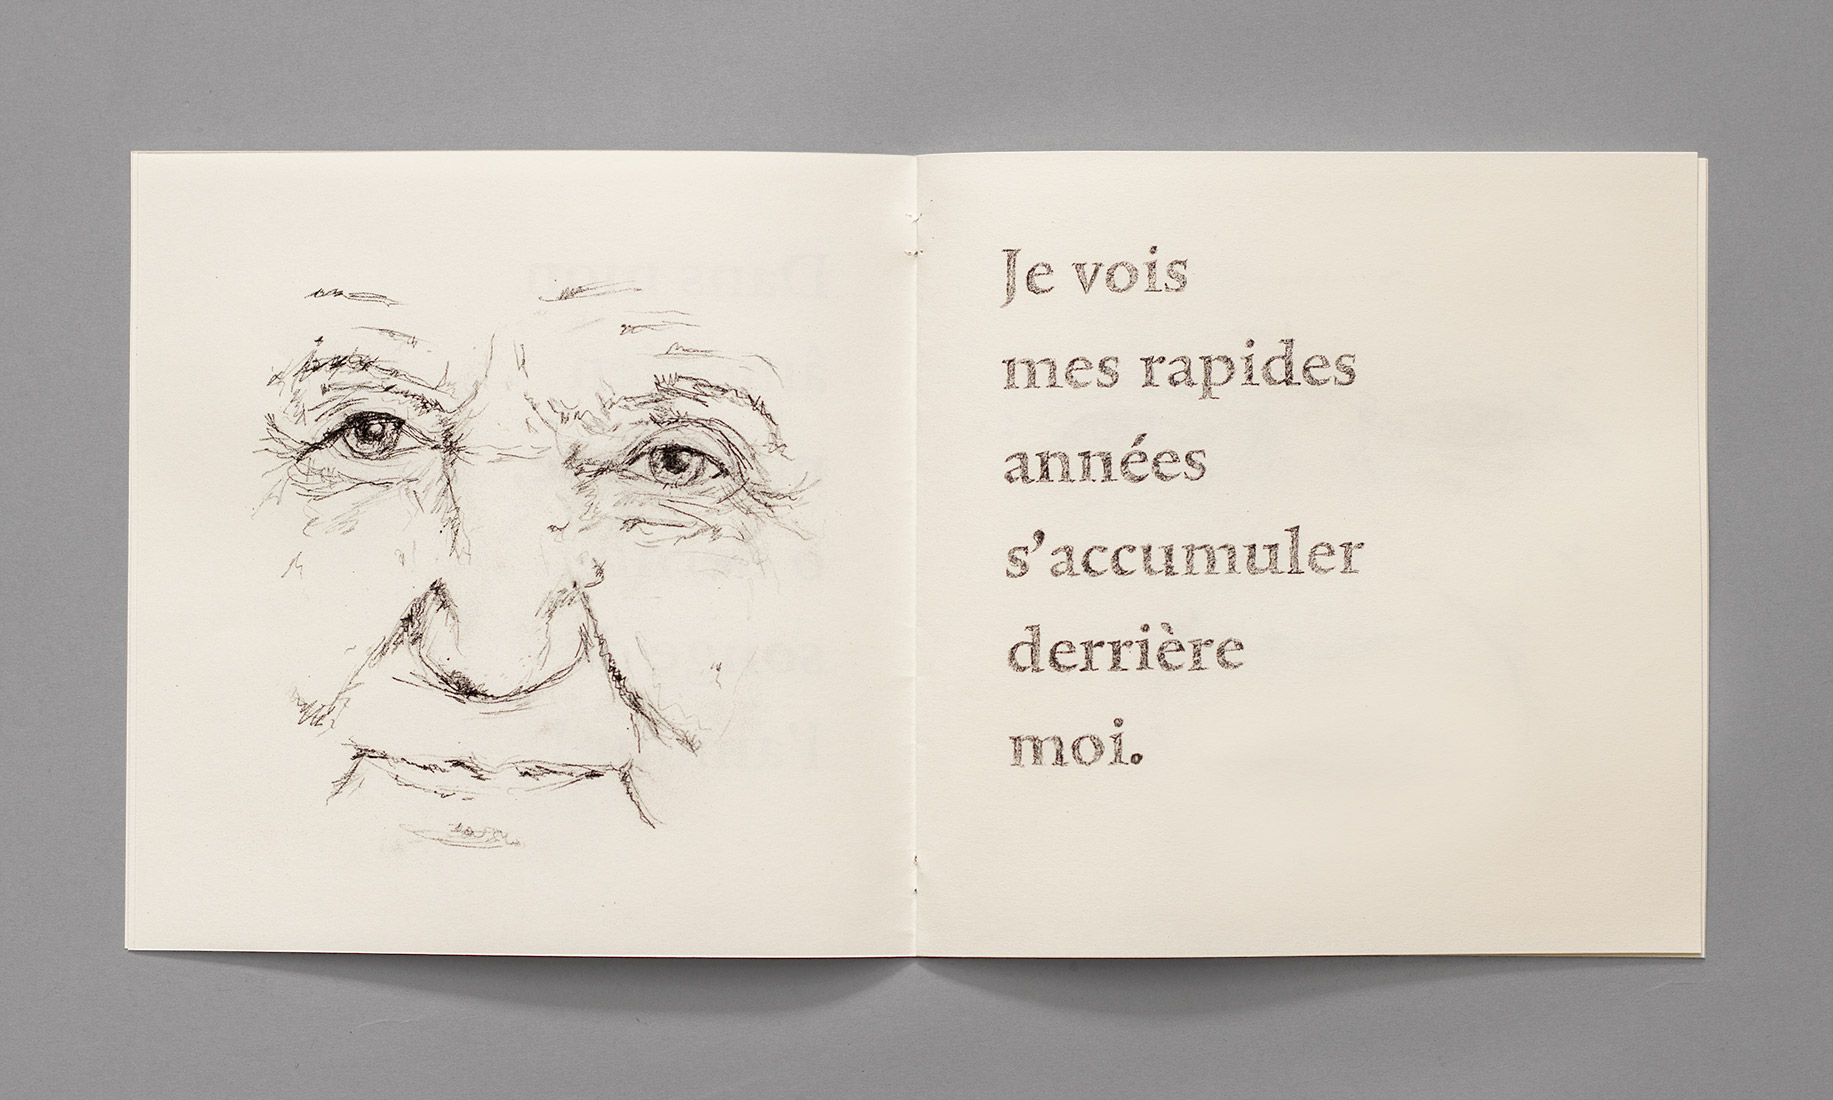 Poem, old man, illustration, face, old person, look, smile, expression, memories, souvenirs, book